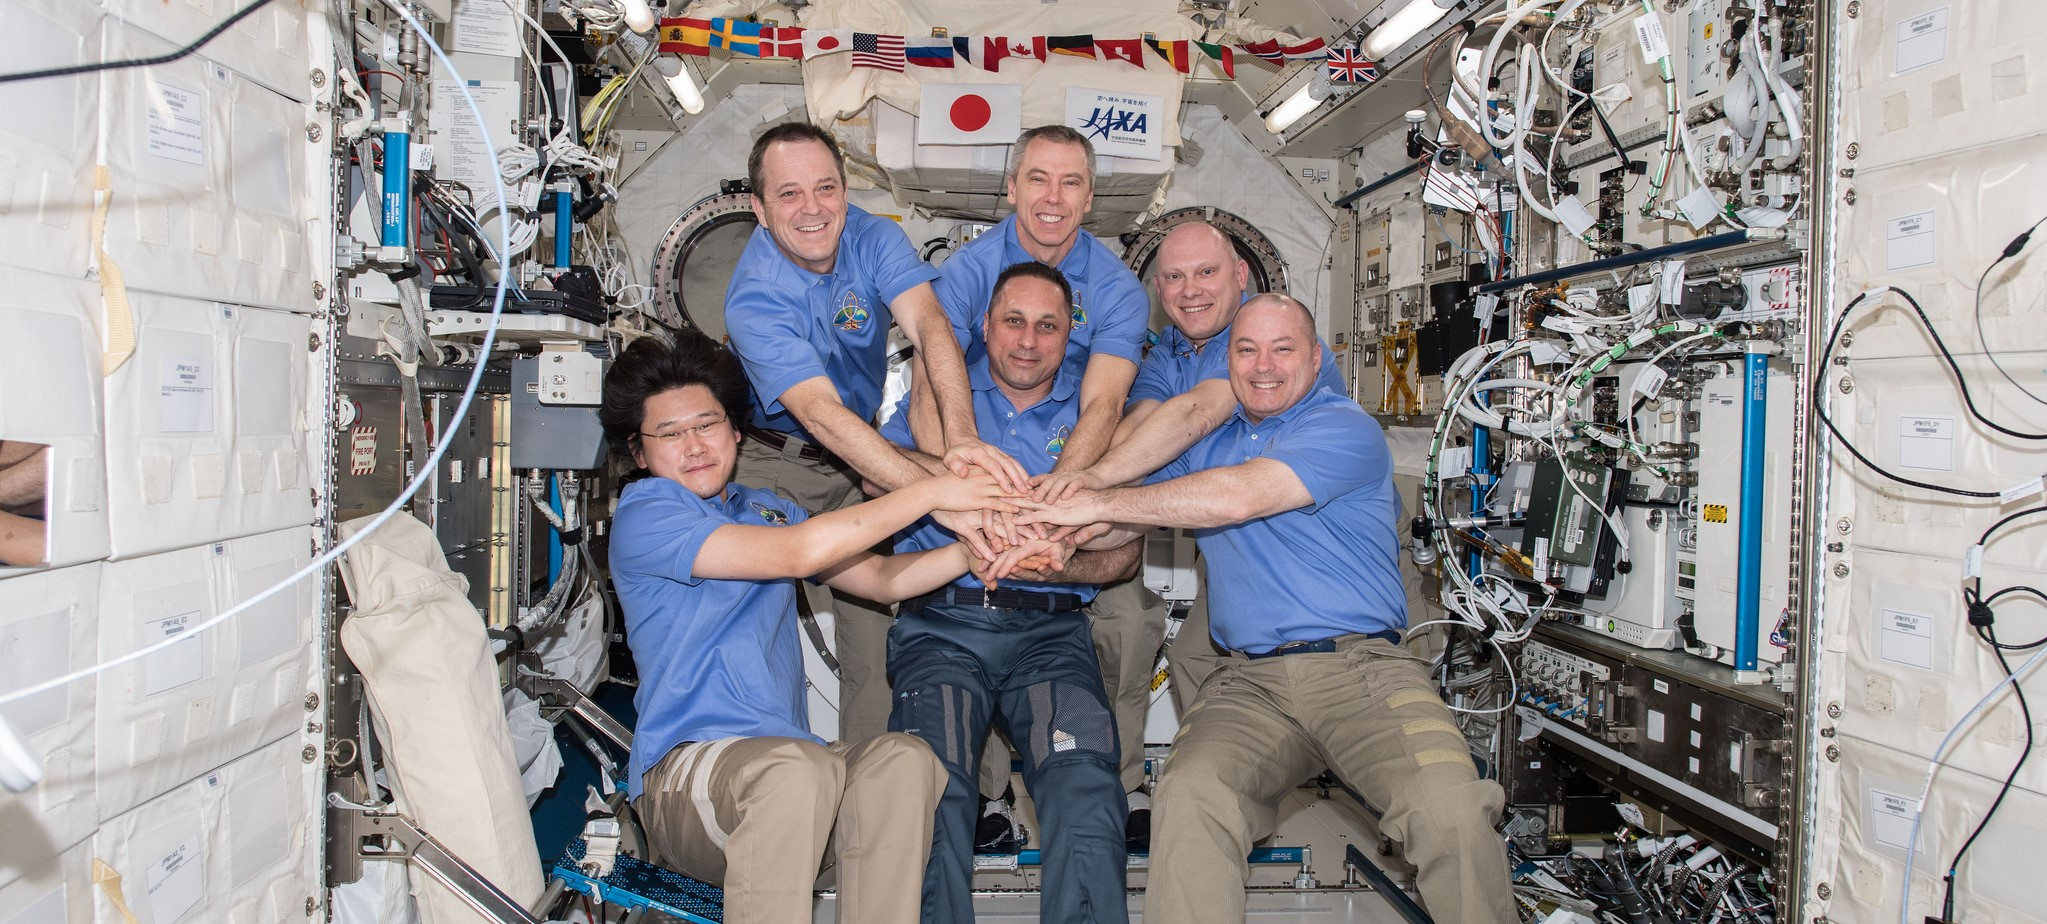 The six-person Expedition 55 crew pose for a portrait inside the Japanese Kibo laboratory. ISS Commander Anton Shkaplerov is in the center. From left to right around him are Norishige Kanai, Ricky Arnold, Drew Feustel, Oleg Artemyev and Scott Tingle. Credit: NASA